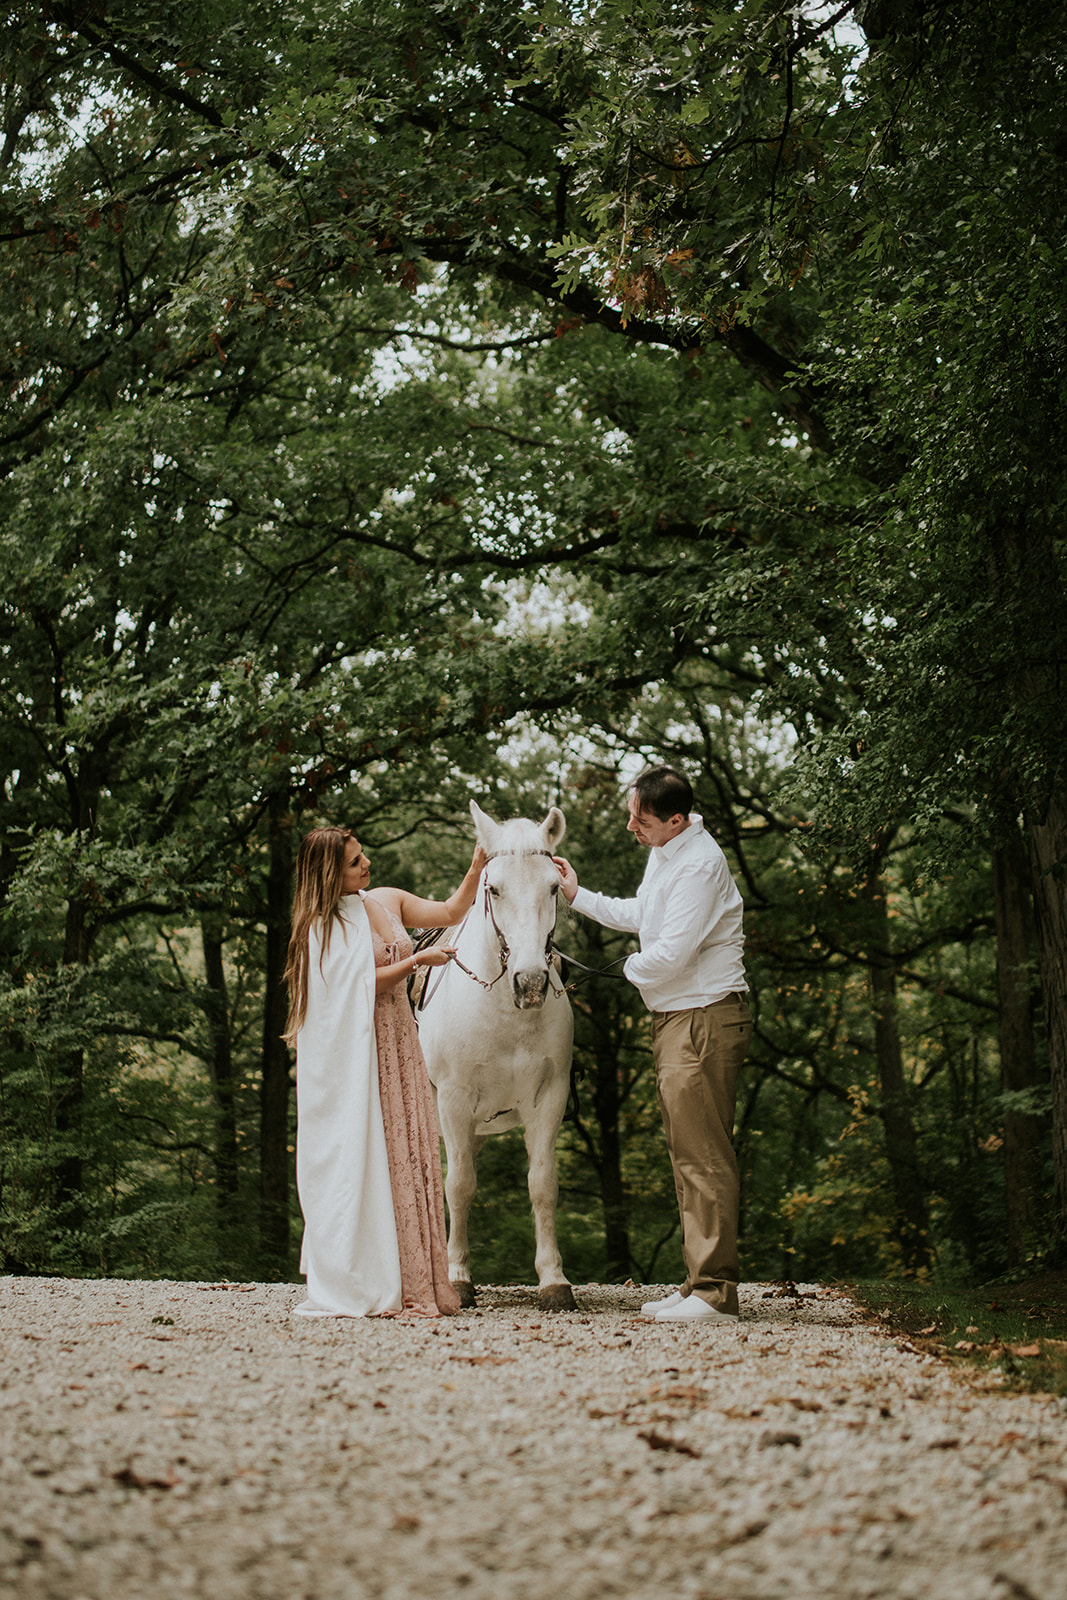 Le Cape Weddings - Boho Styled Shoot - Bride on Horse -7.jpg